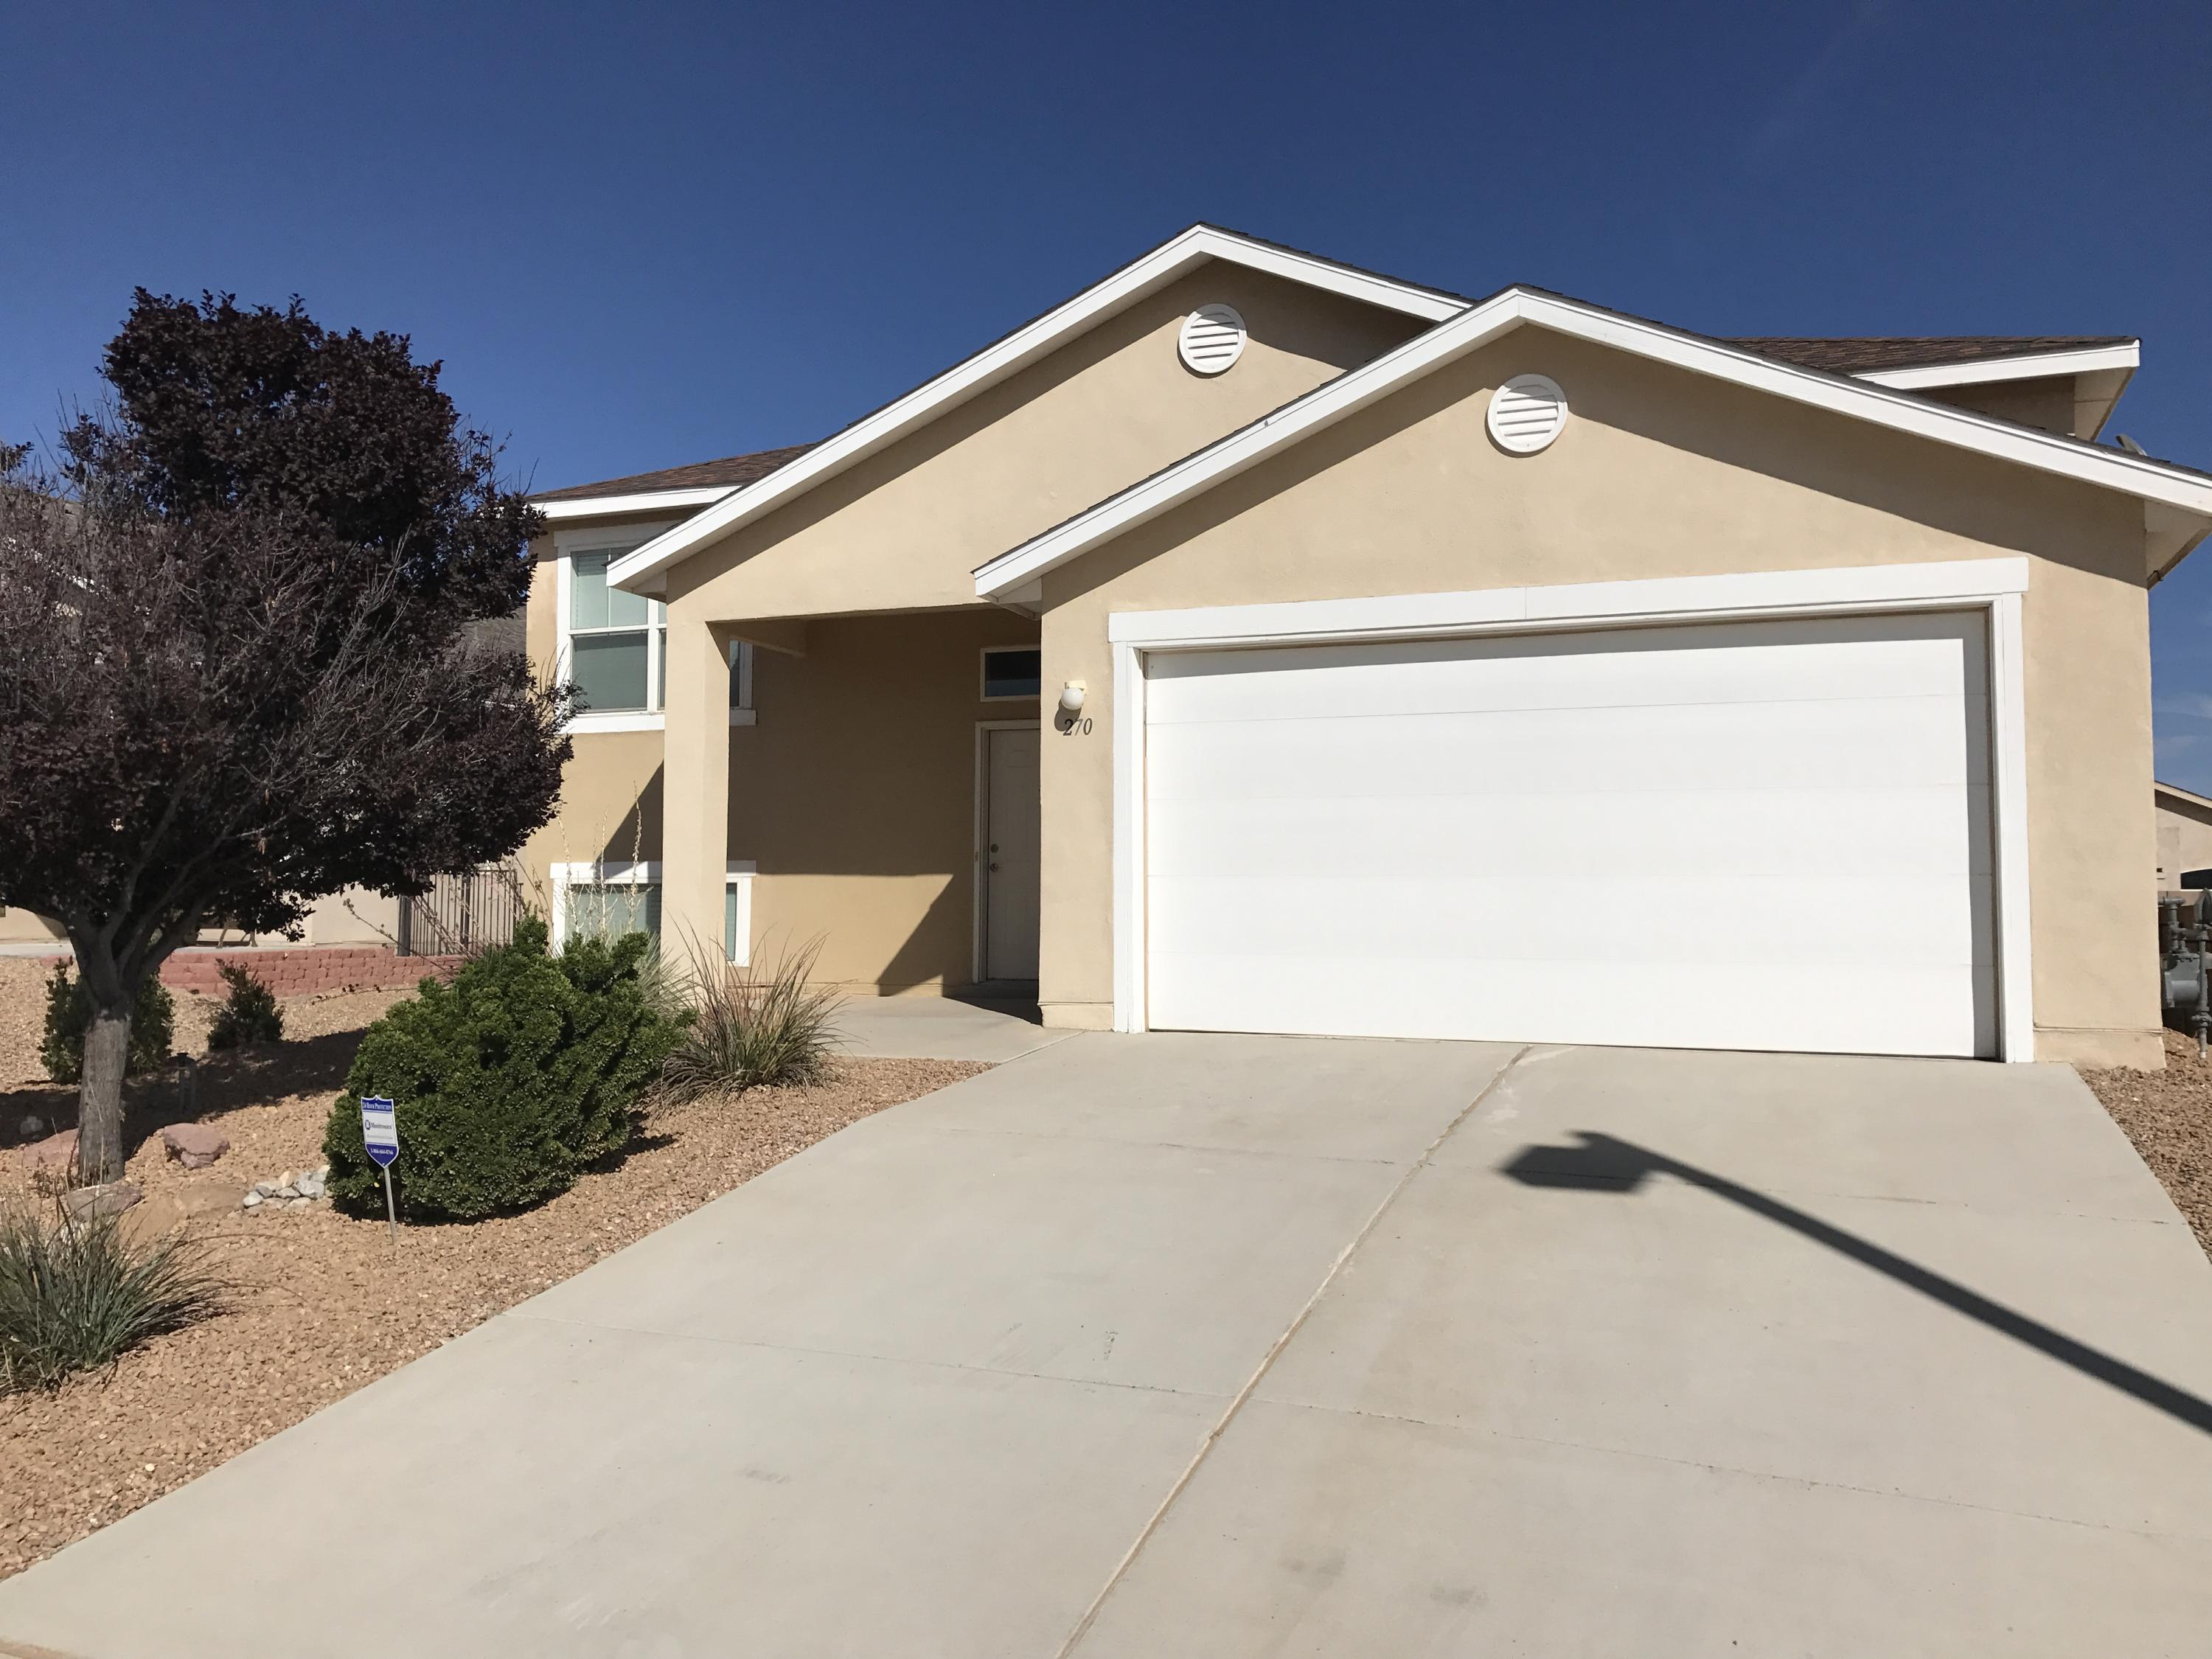 Nice and roomy split level home in desirable Huning Ranch!  This one is close to the freeway, shopping, schools and churches!  Don't miss this opportunity for a large split floor plan and three full bathrooms!  Endless opportunities exist with all this room!  This home offers a second living area that can be used in so many ways!  Excellent views from the back deck, spacious back yard and it is nicely landscaped!